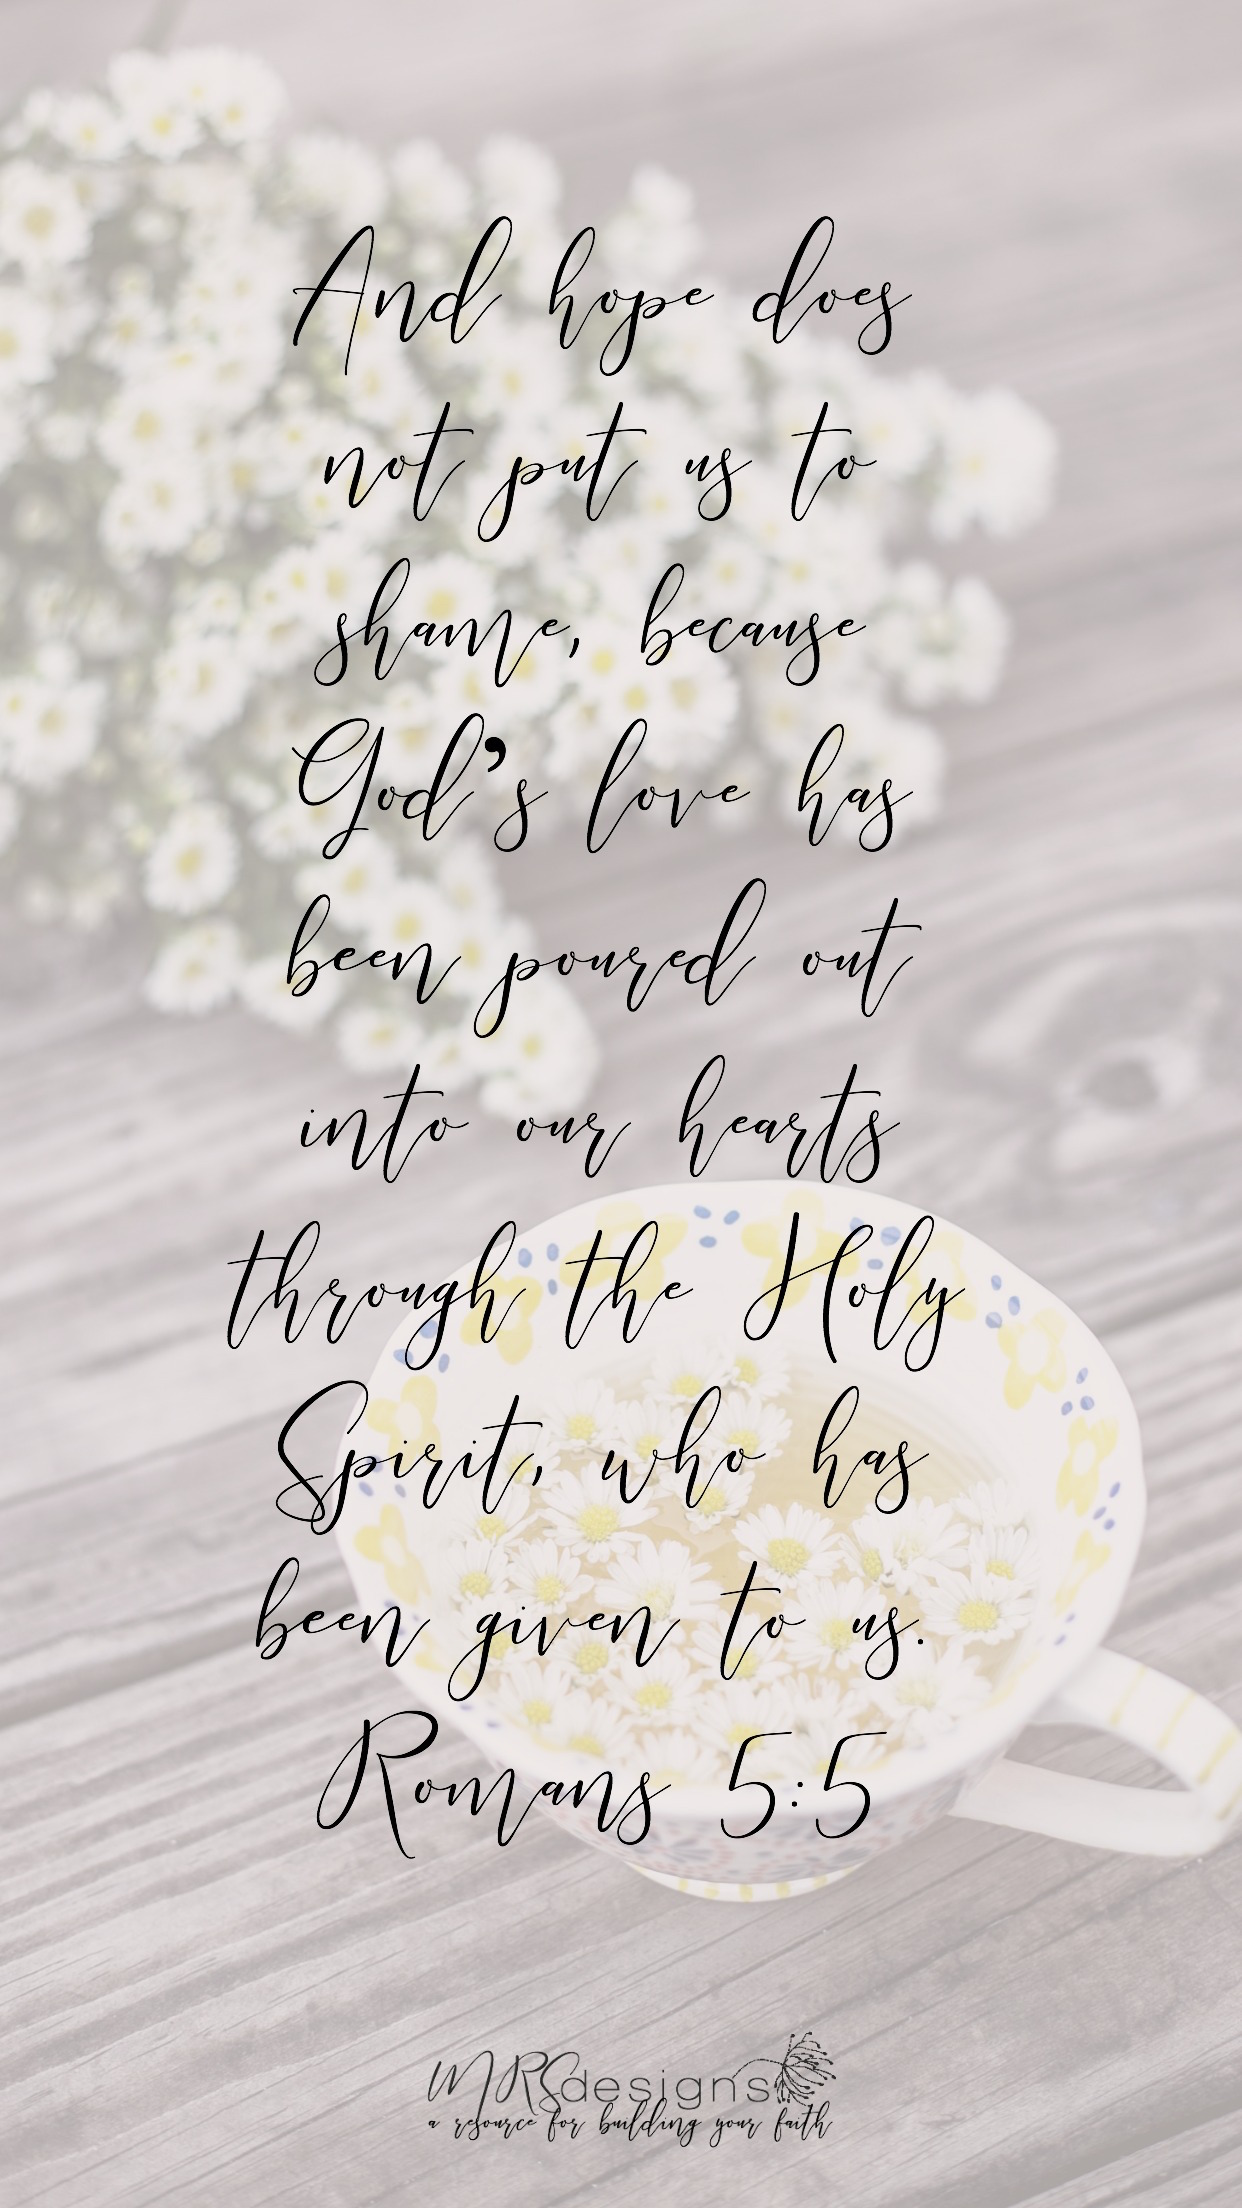 Romans 5_5 MRS designs iphone lock screen